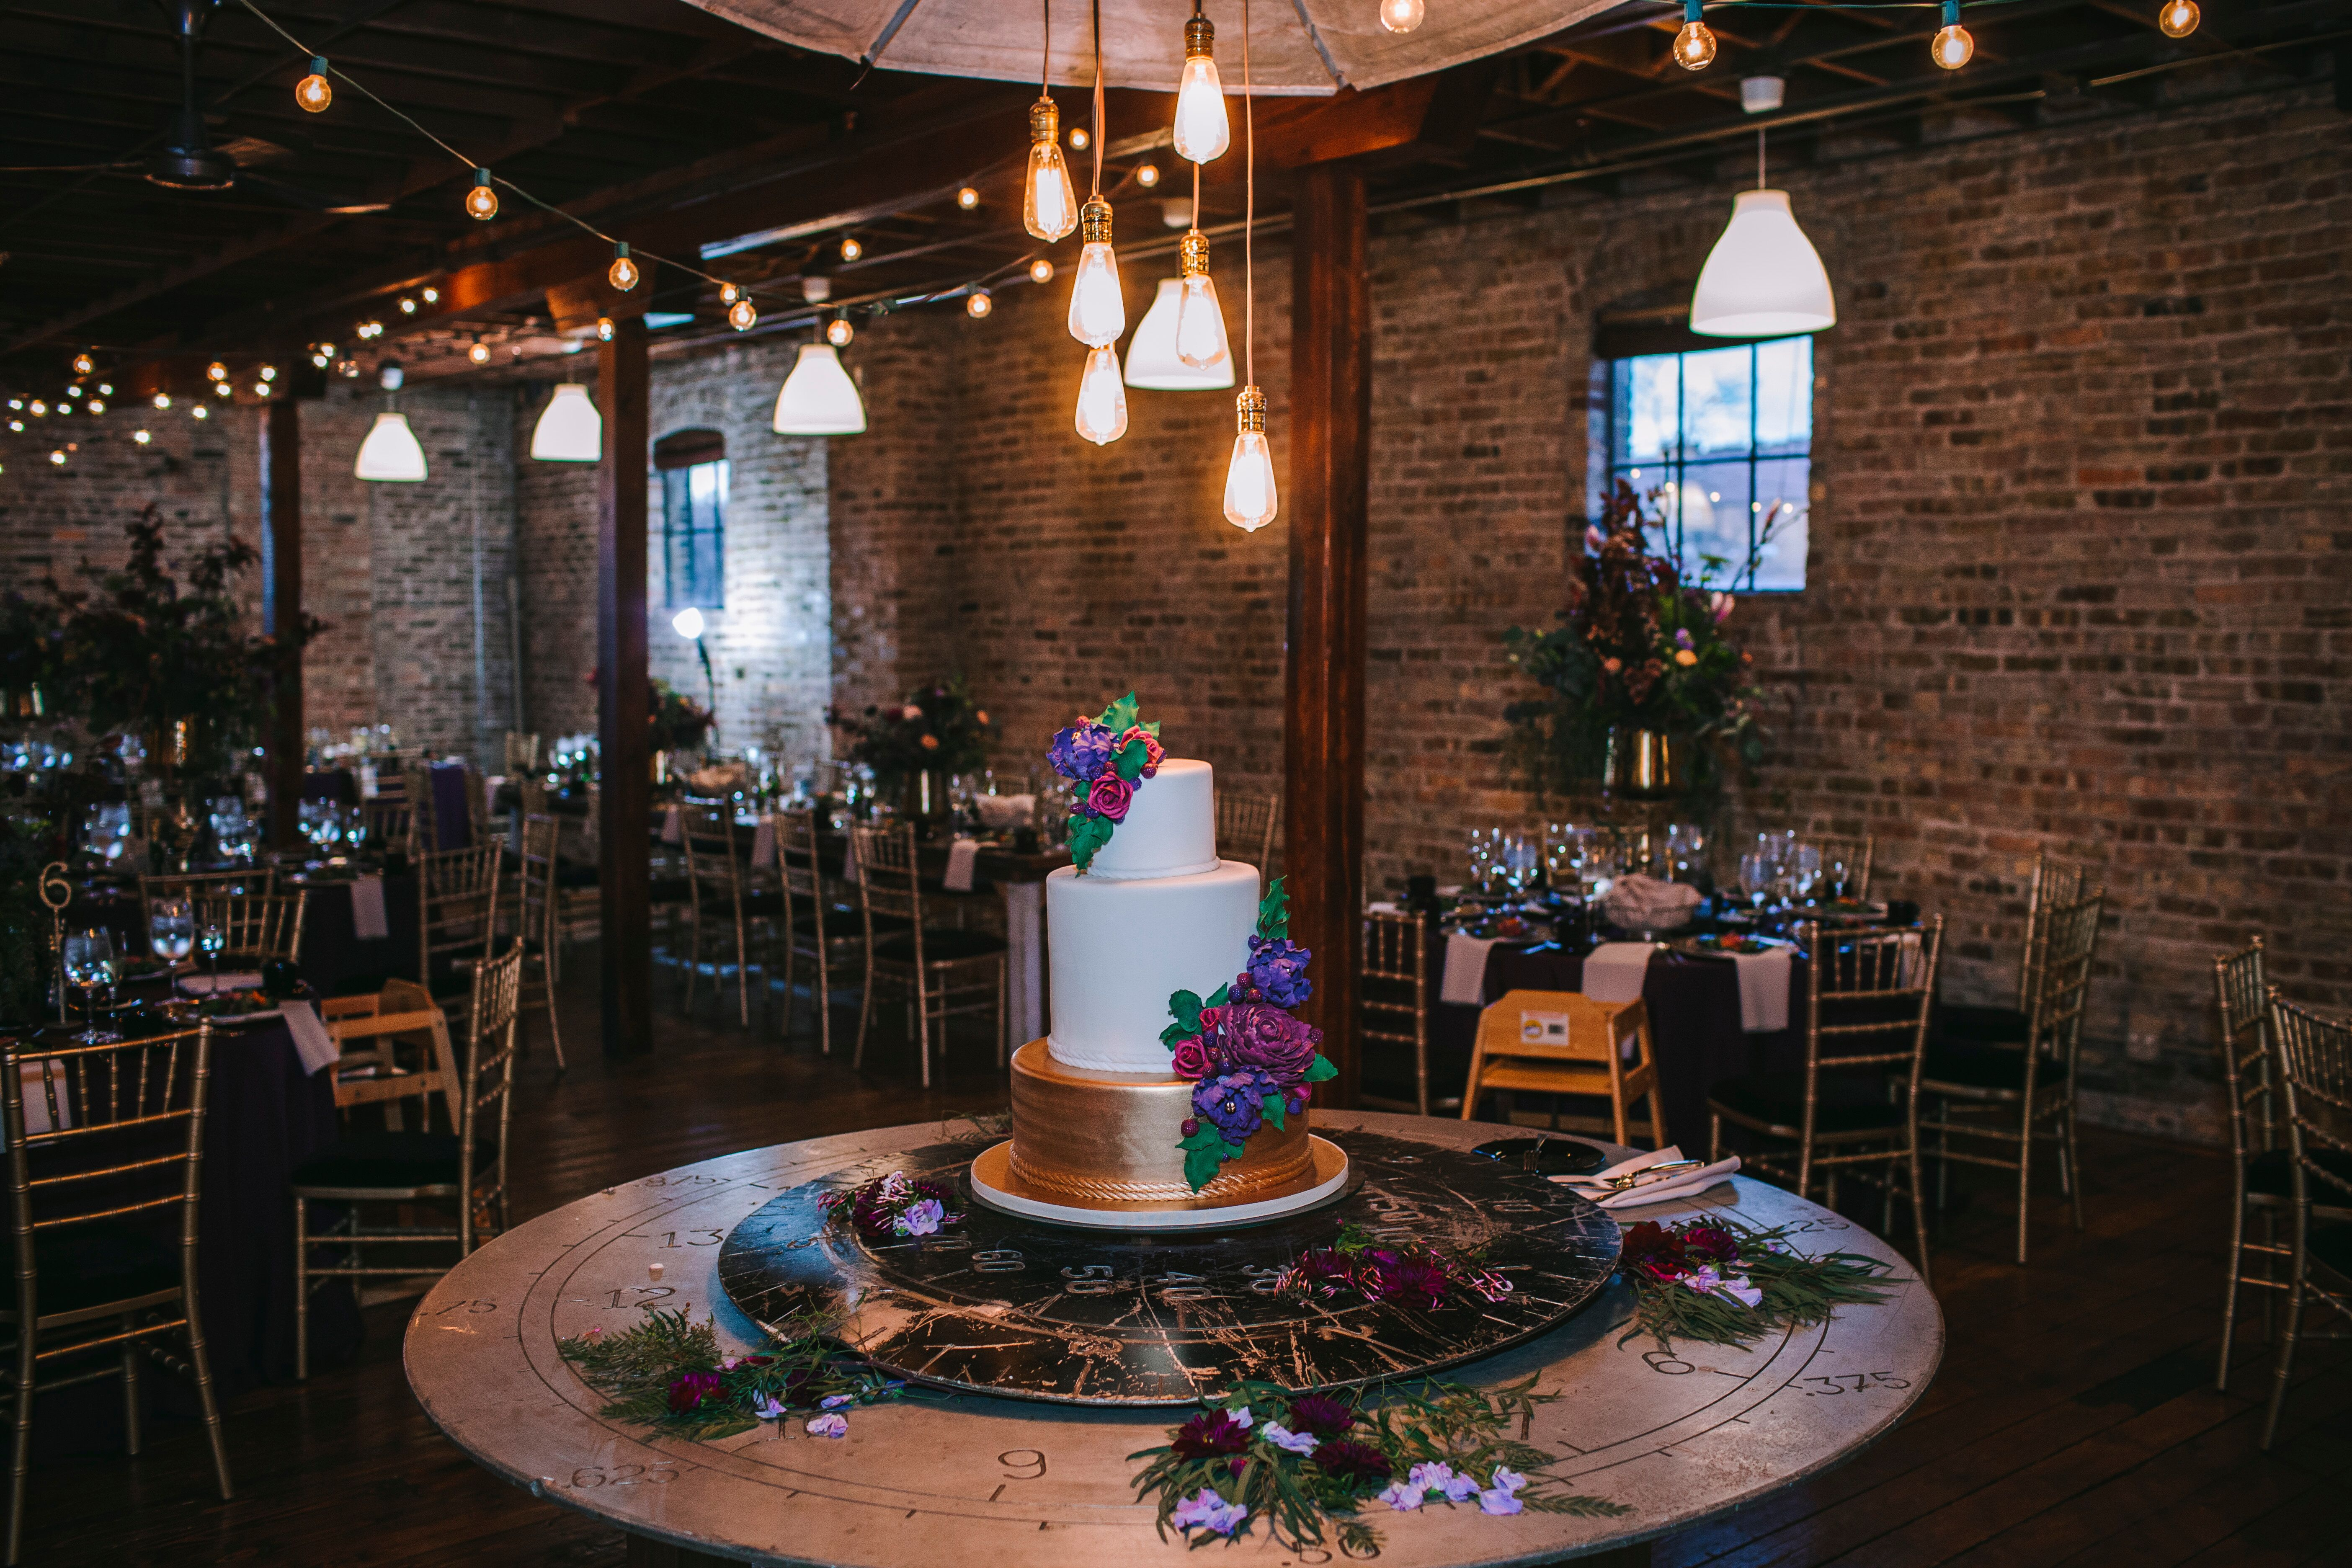 Wedding Venues in Schaumburg, IL - The Knot